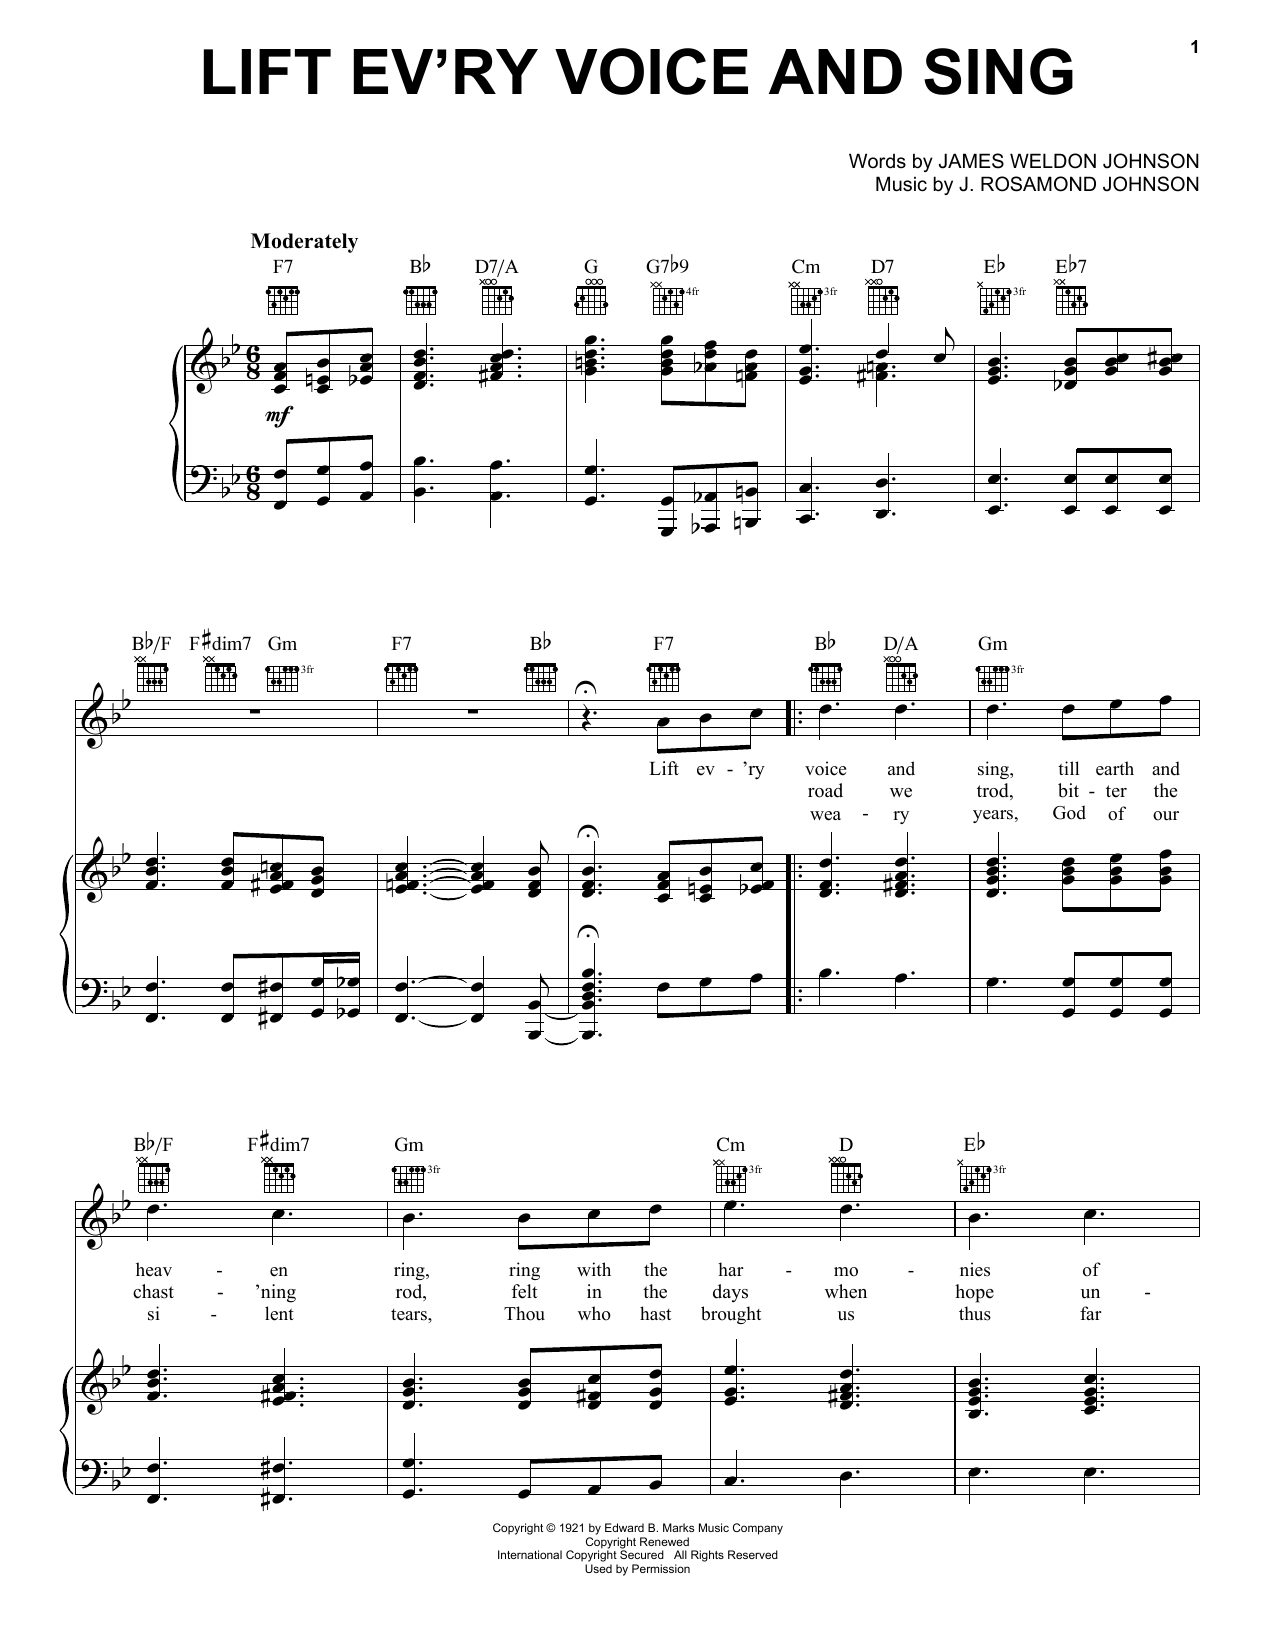 J Rosamond Johnson Lift Ev Ry Voice And Sing Sheet Music Pdf Notes Chords Hymn Score Piano Vocal Guitar Right Hand Melody Download Printable Sku 16398